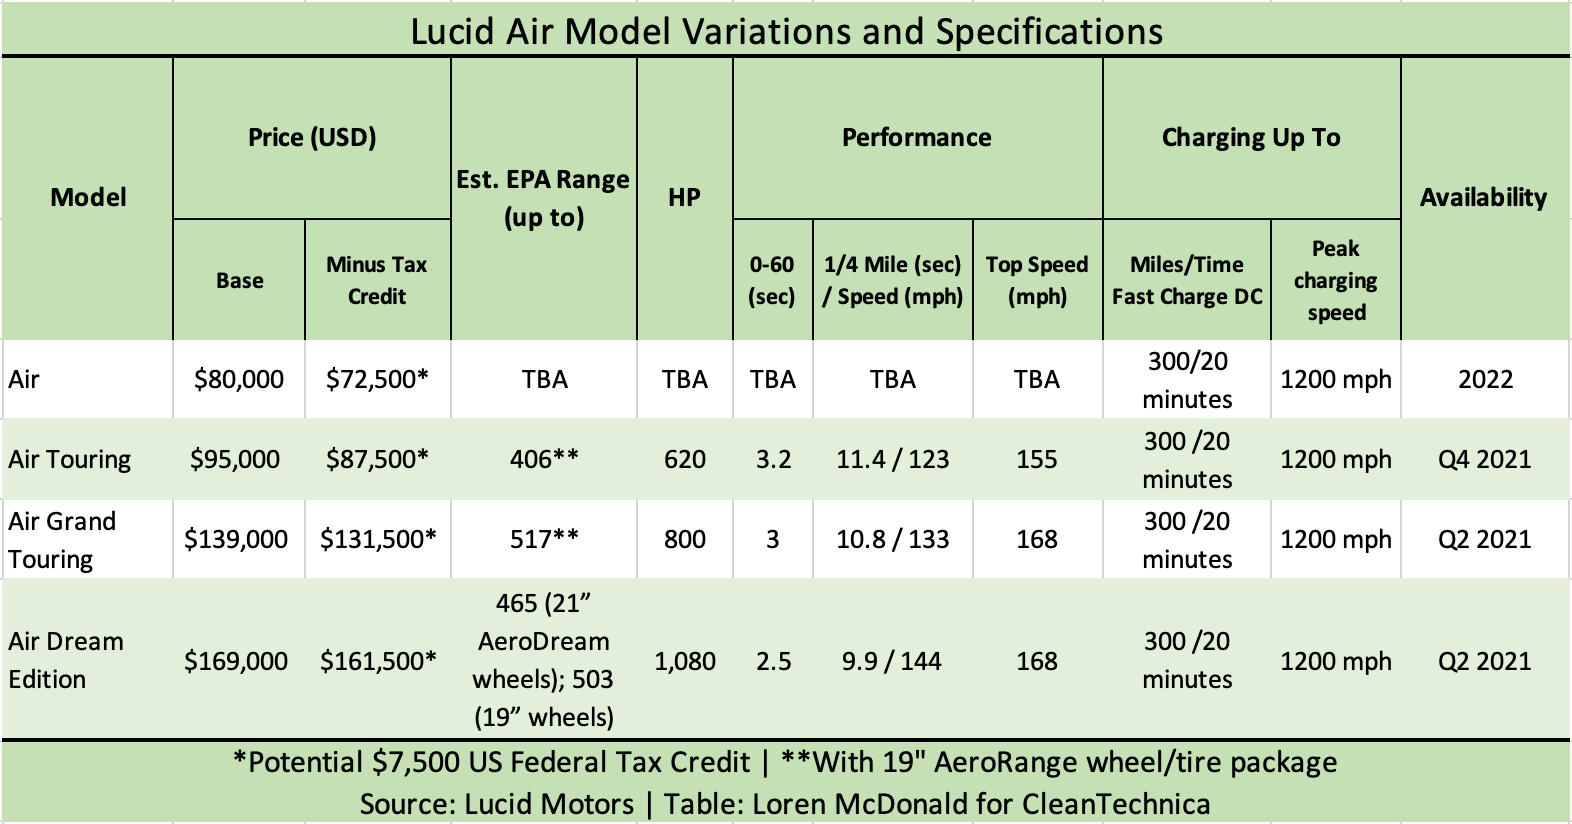 Lucid Air Model Variations and Specifications table-Loren McDonald-2